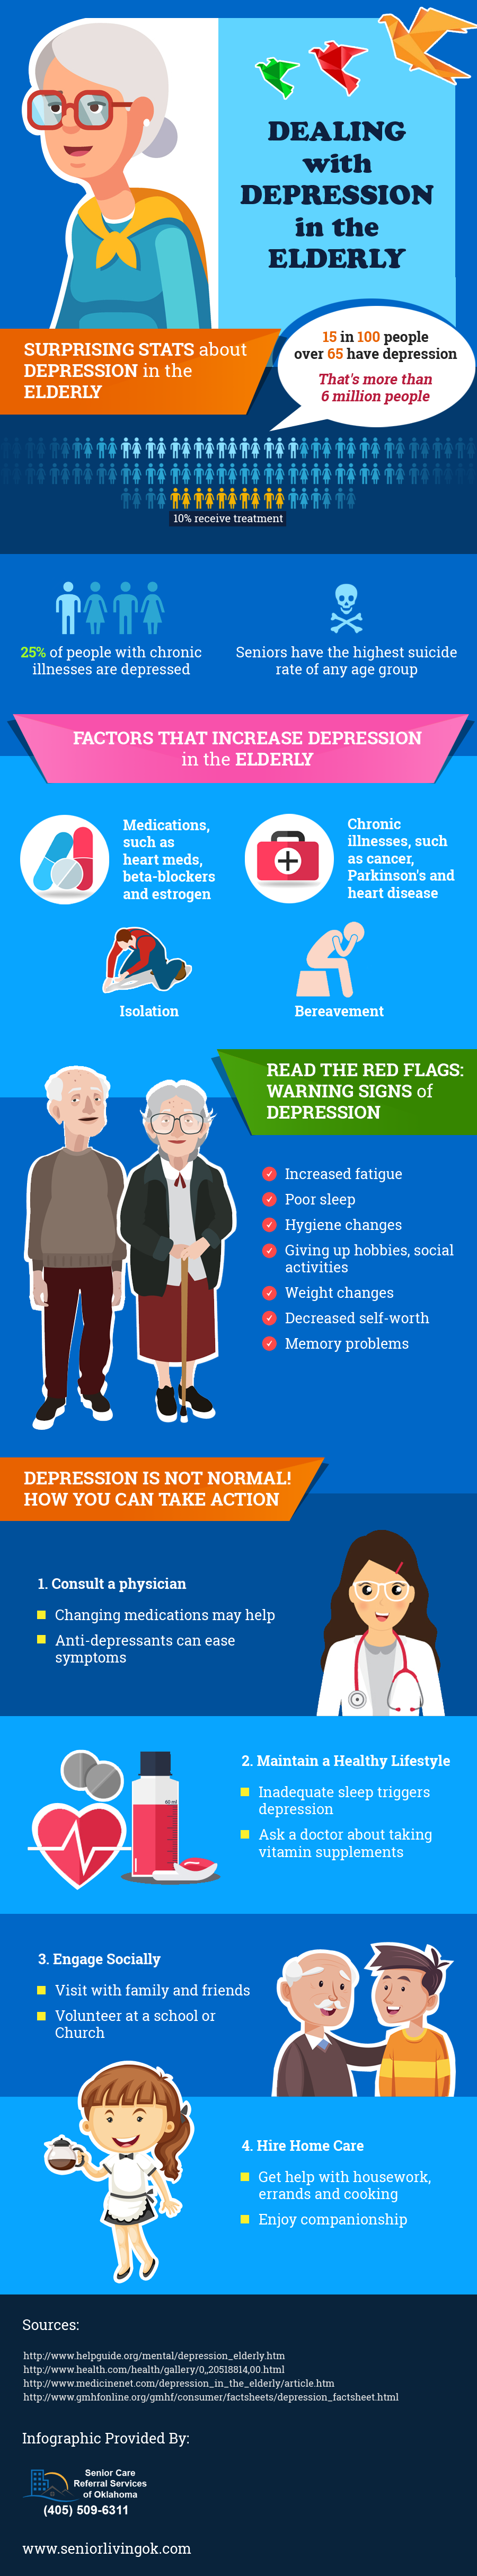 Dealing With Depression In The Elderly.png